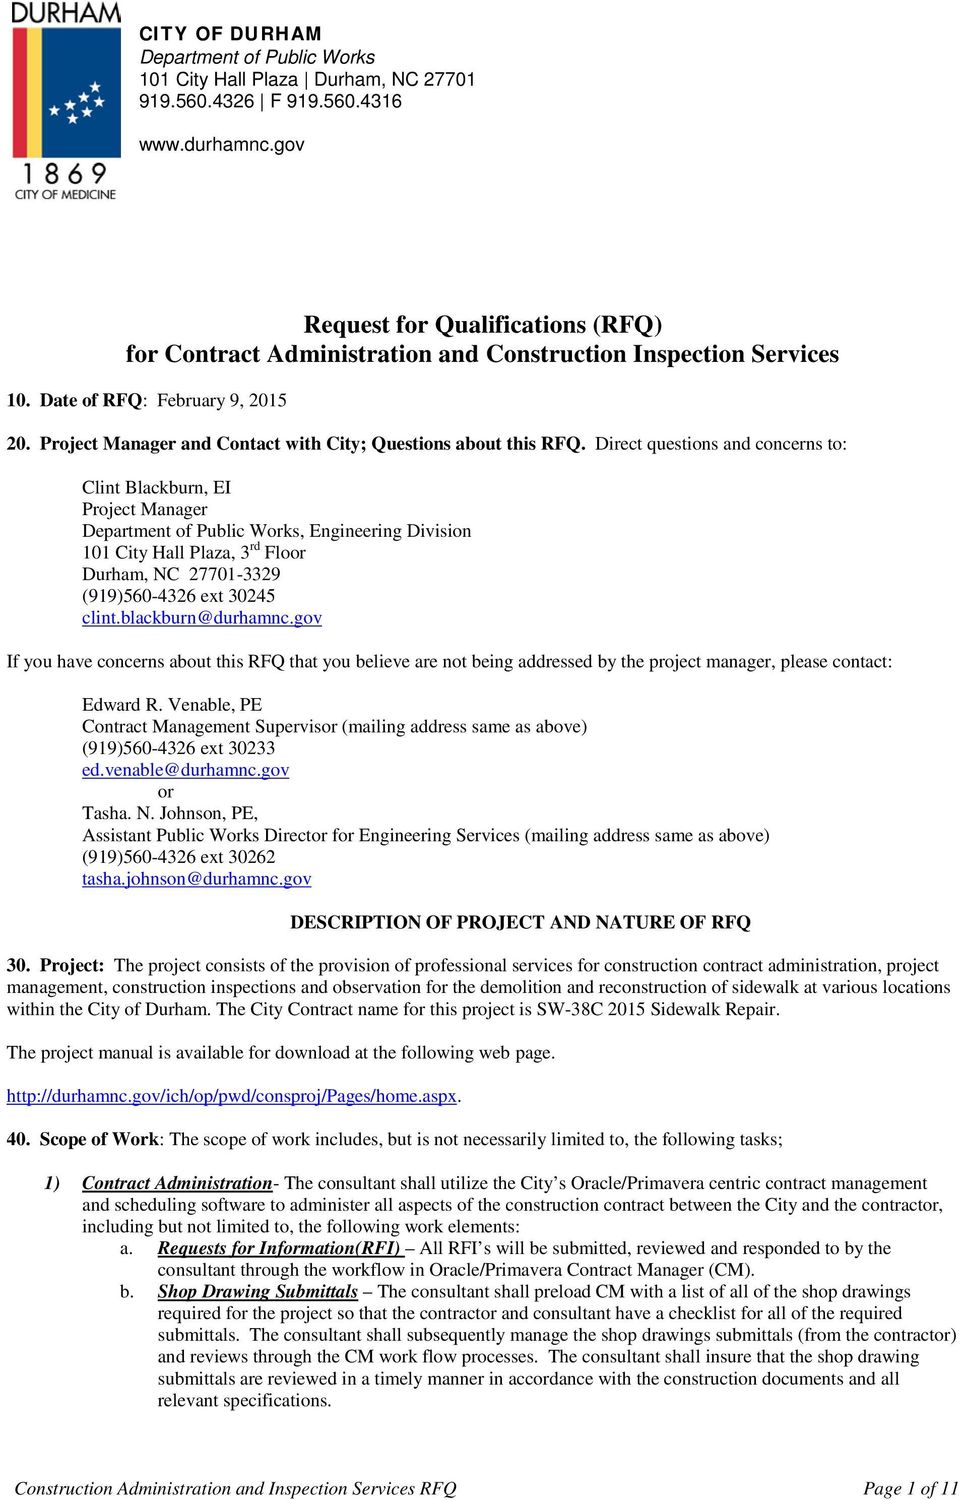 Request For Qualifications Rfq For Contract Administration And